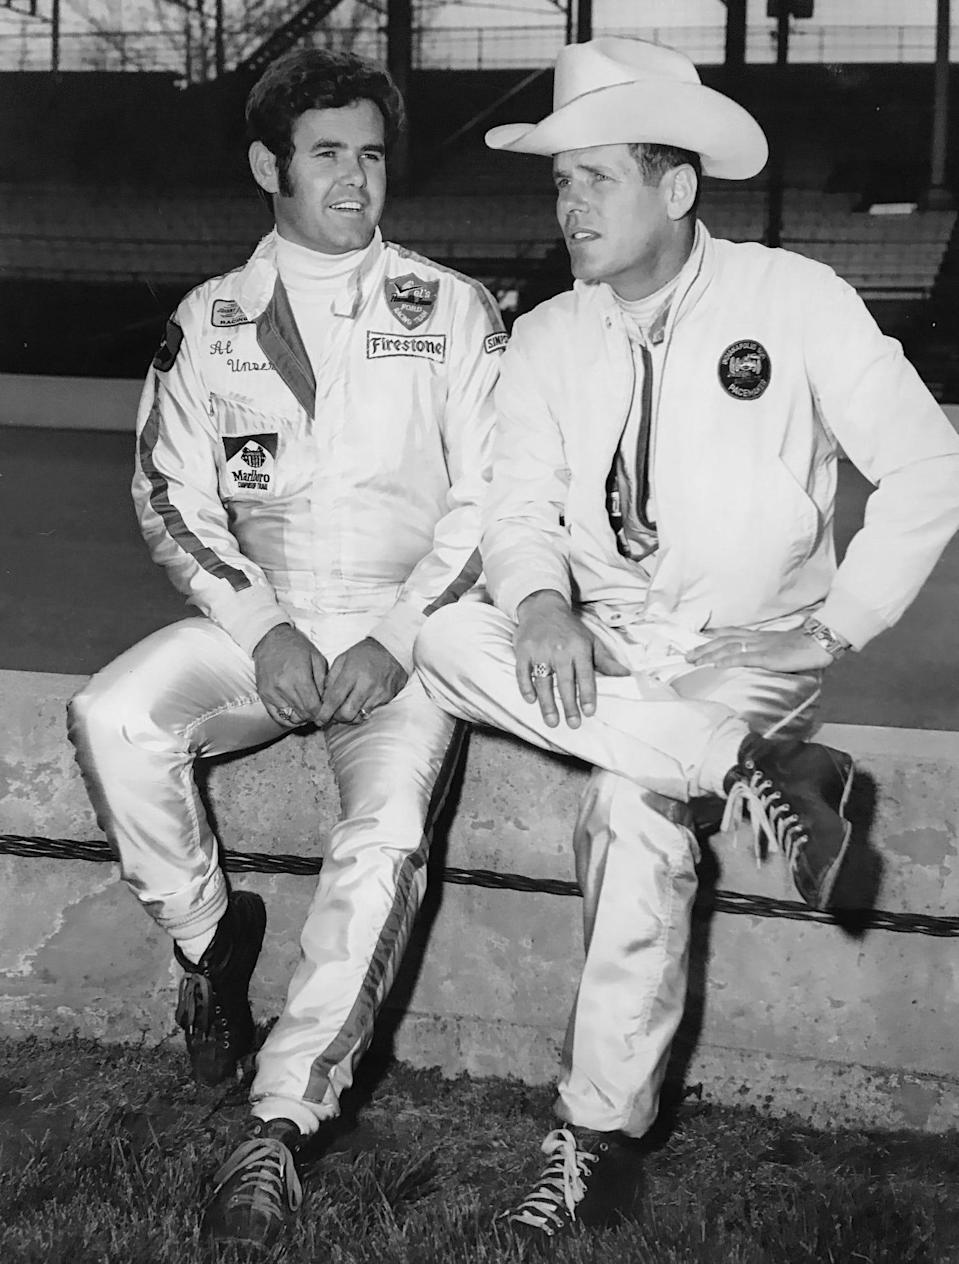 Al, left, and brother Bobby Unser prepare for the Indiana Classic 100-mile USAC stock car race at the Indiana StateFairgrounds in 1972.